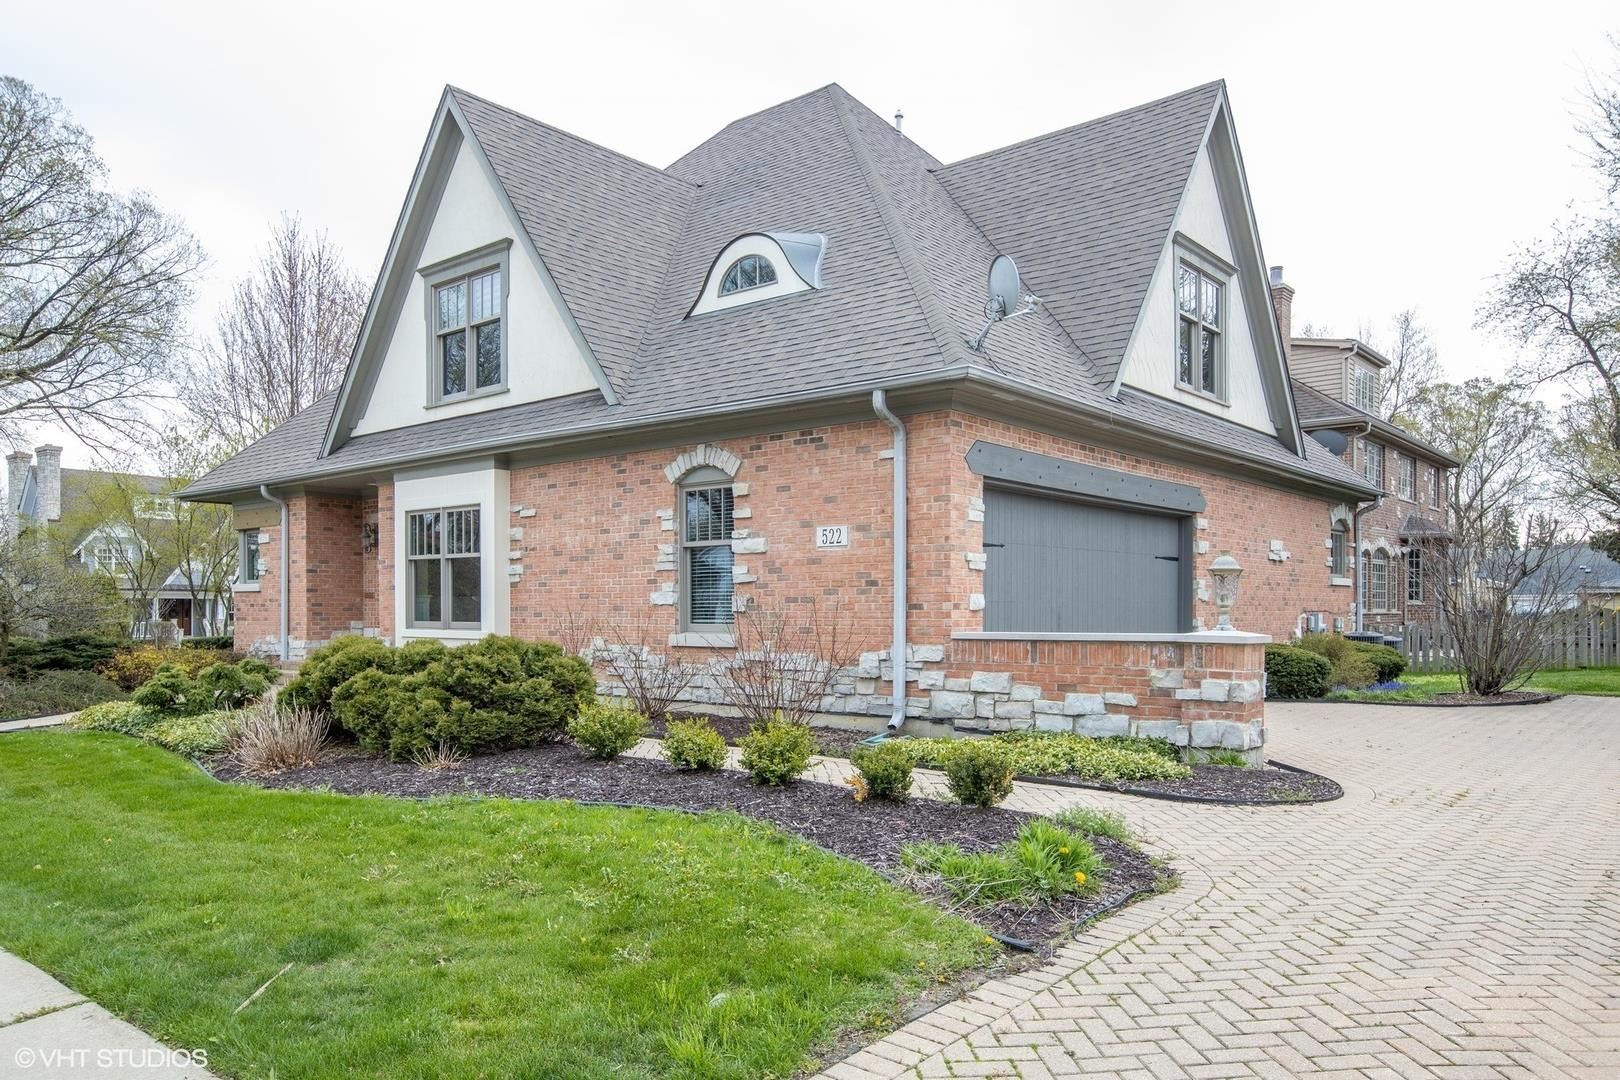 522 N County Line Road, Hinsdale, IL 60521 - #: 10699854